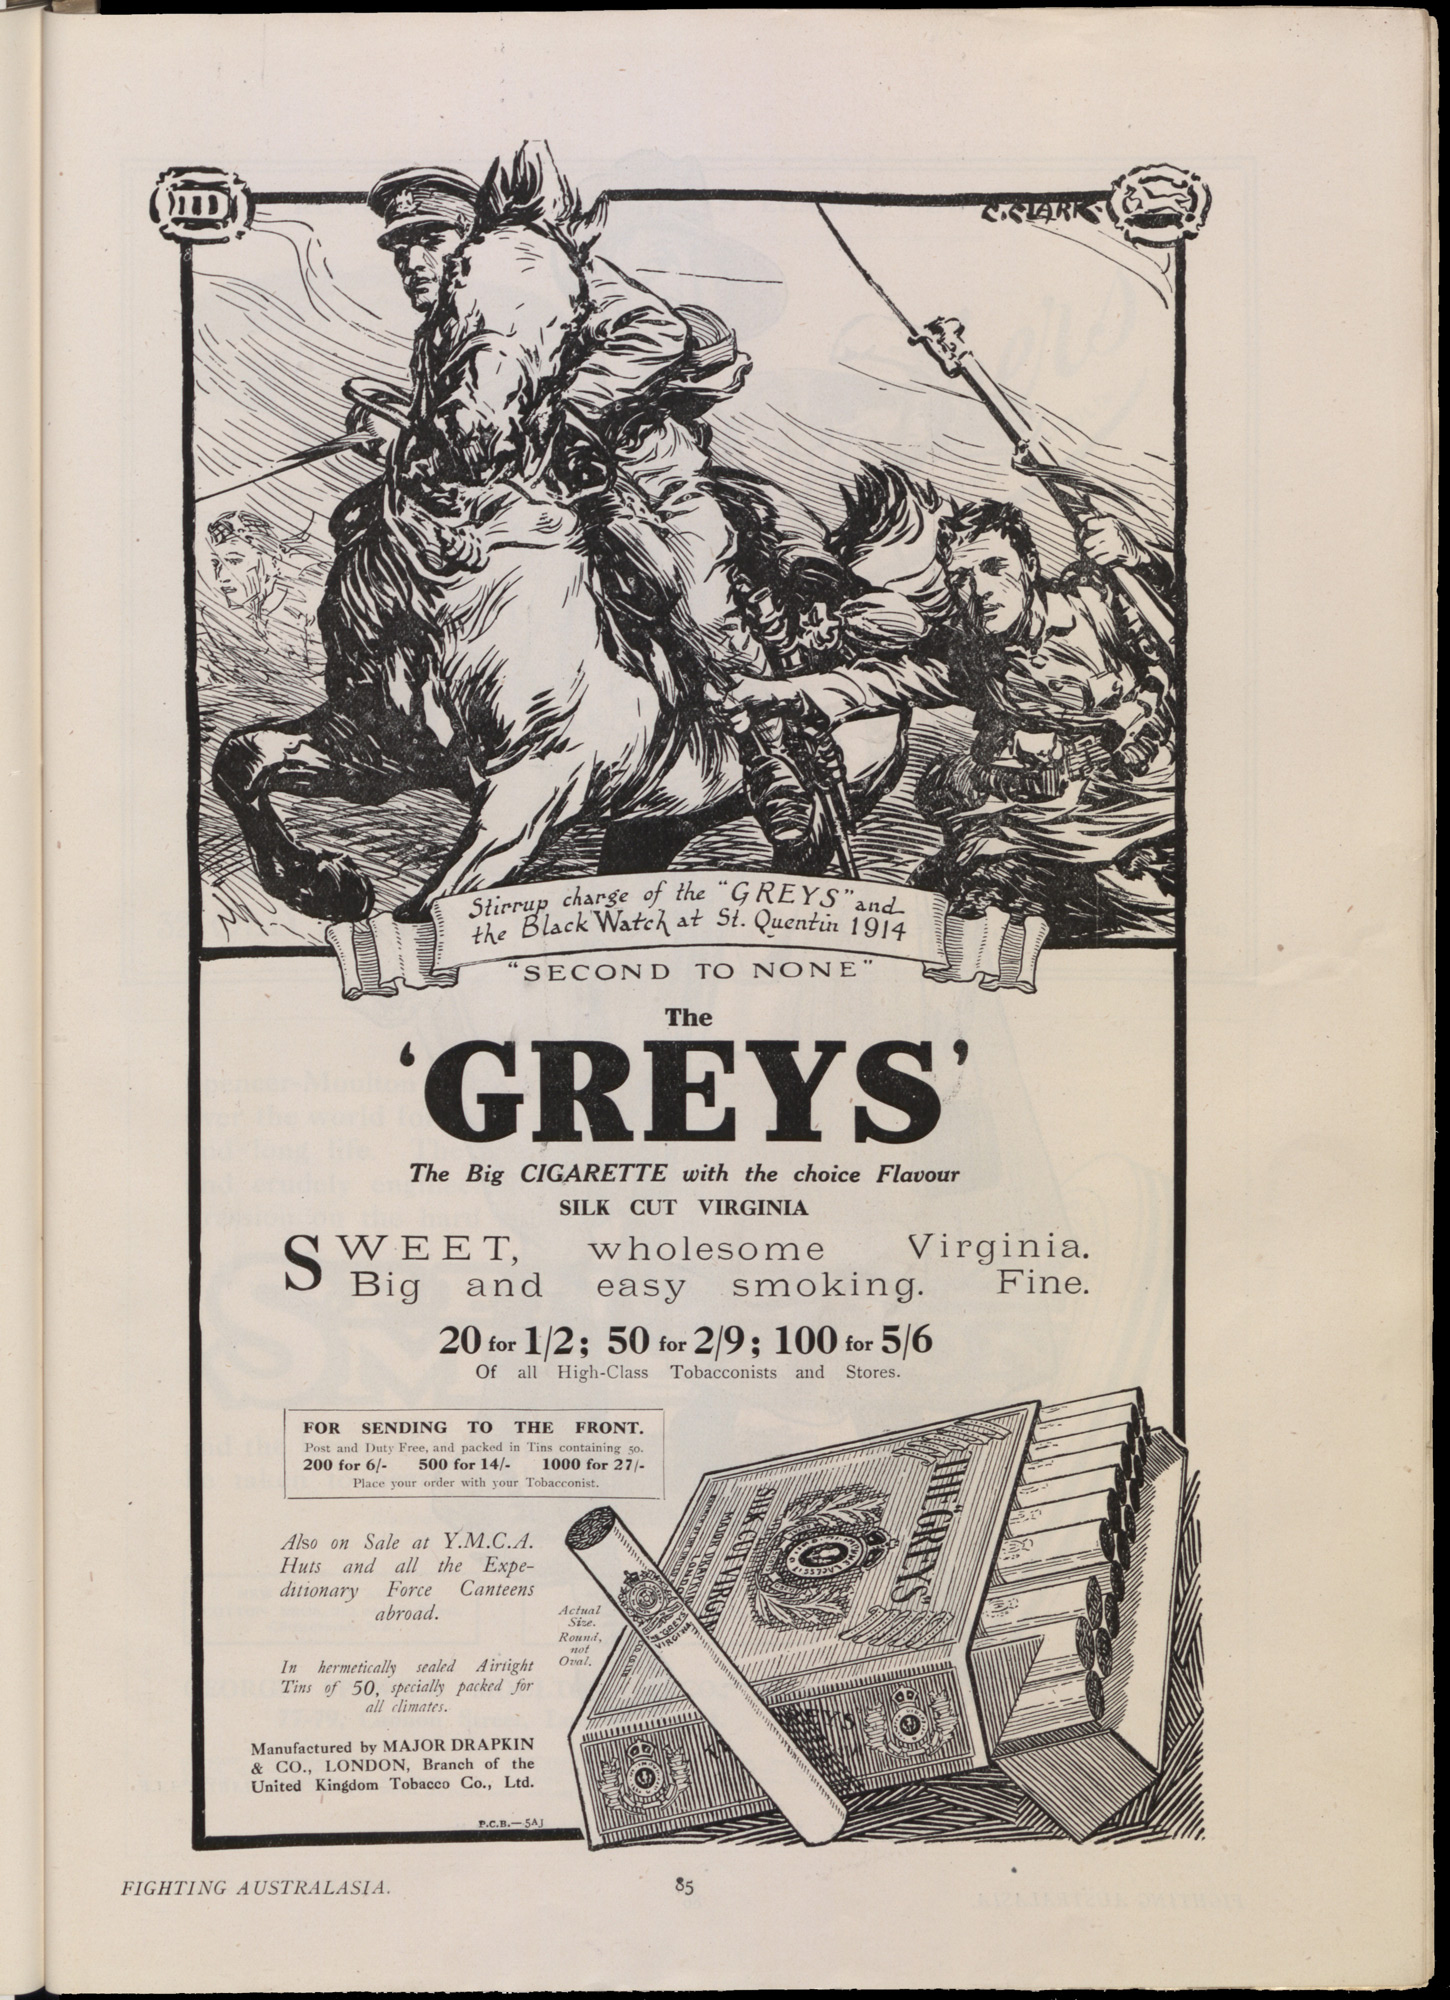 Advert for Greys Cigarettes